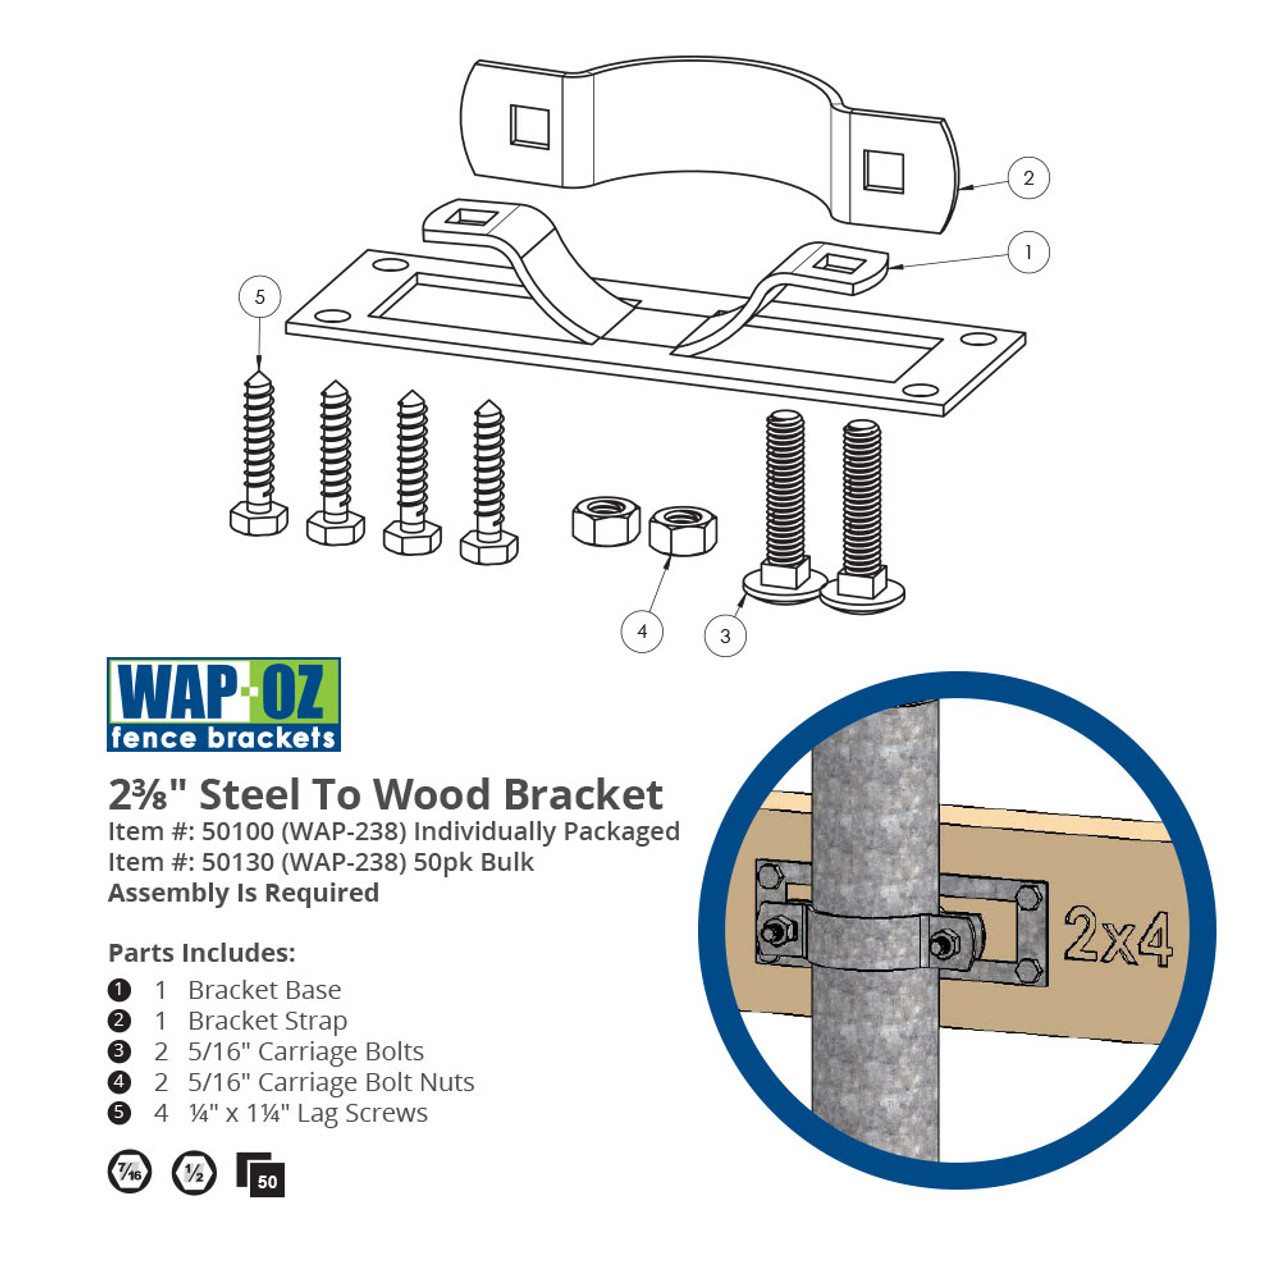 OZCO Building Products WAP-238 Steel to Wood Fence Bracket Line Drawing